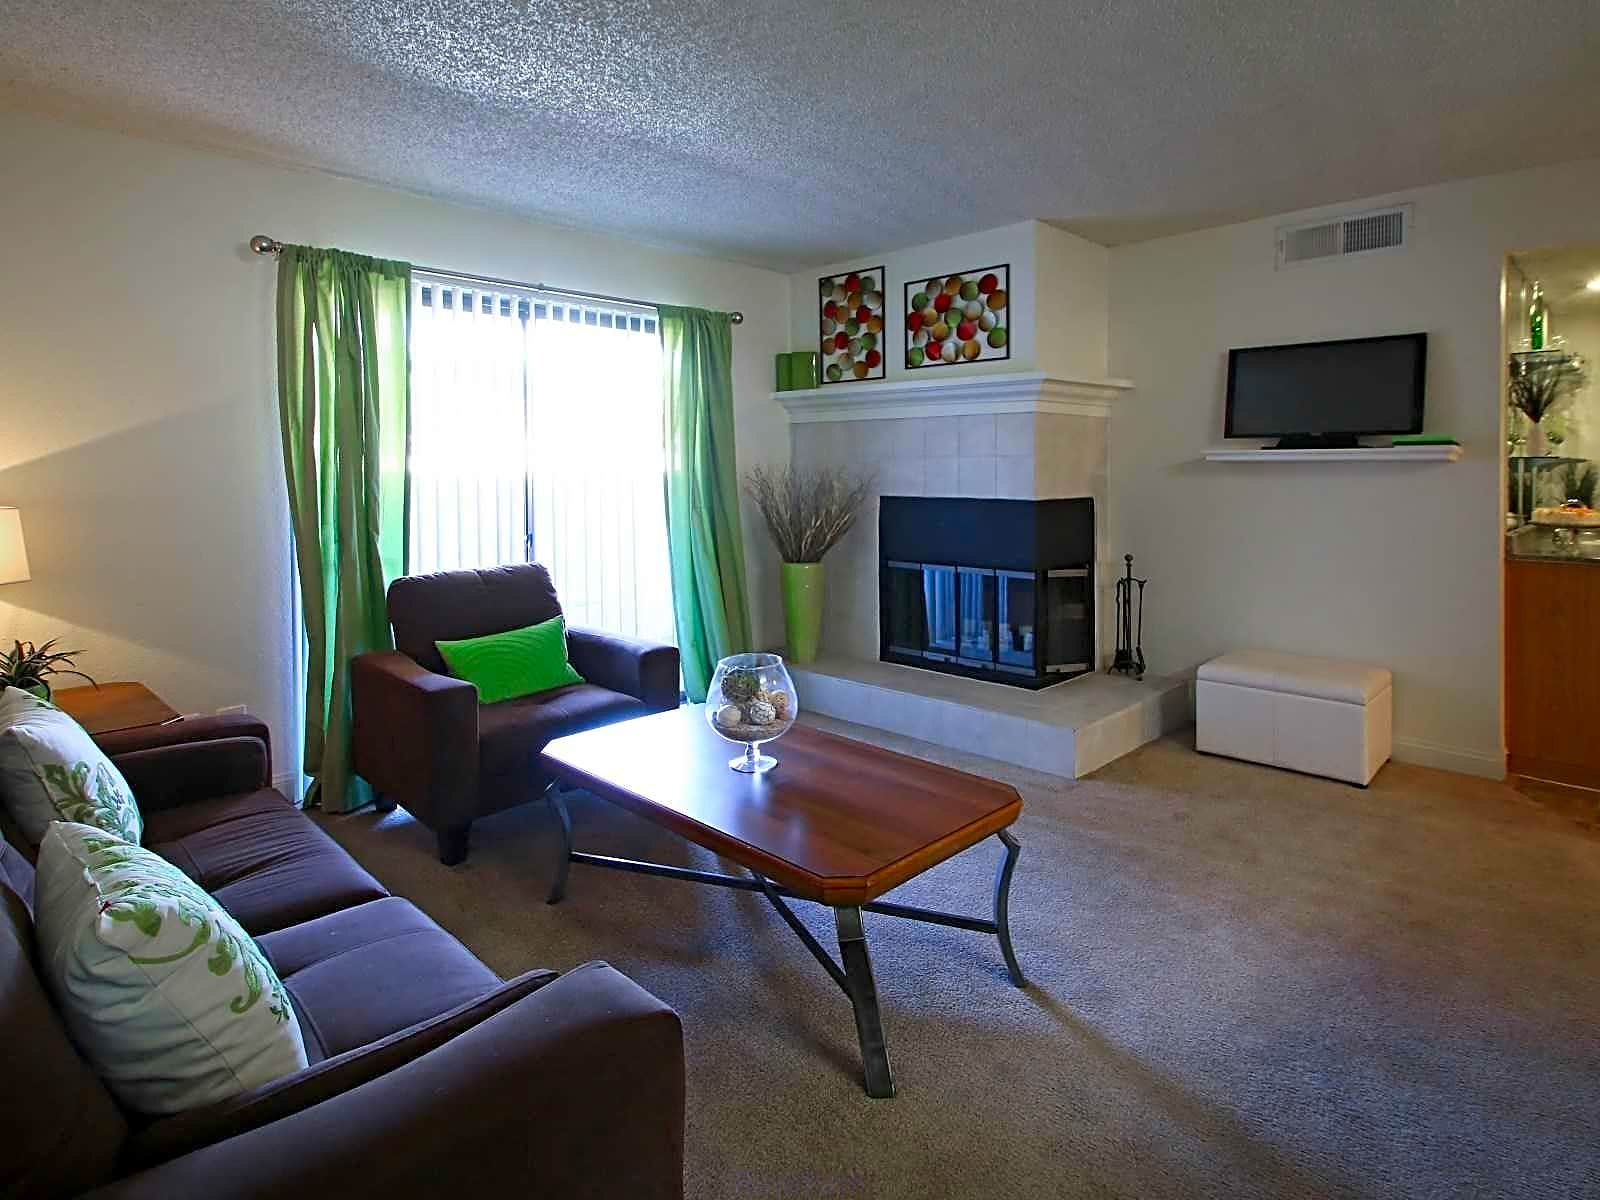 Apartments Near UNLV Rancho Mirage for University of Nevada-Las Vegas Students in Las Vegas, NV